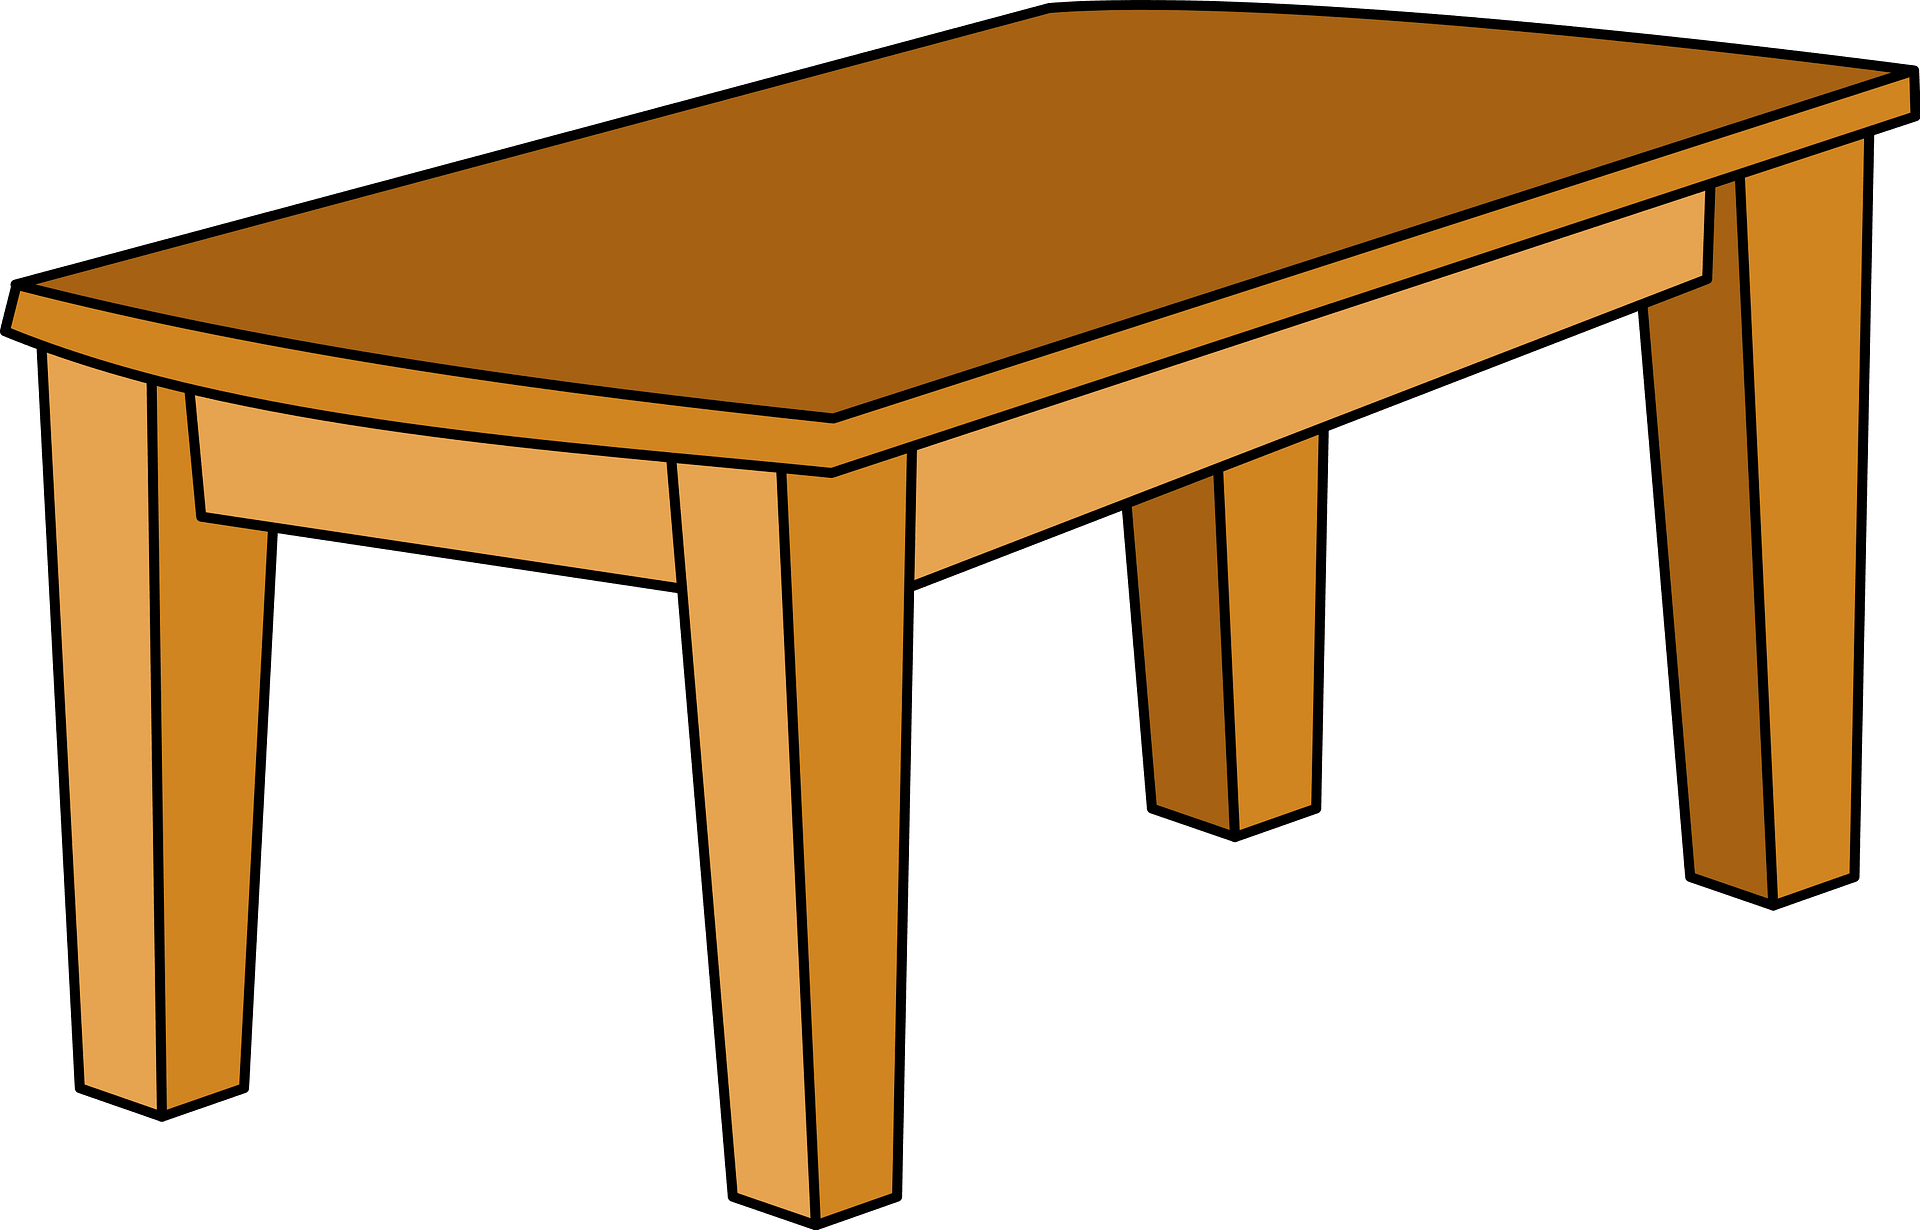 Picture of: Coffee Table Clipart Free Download Transparent Png Creazilla